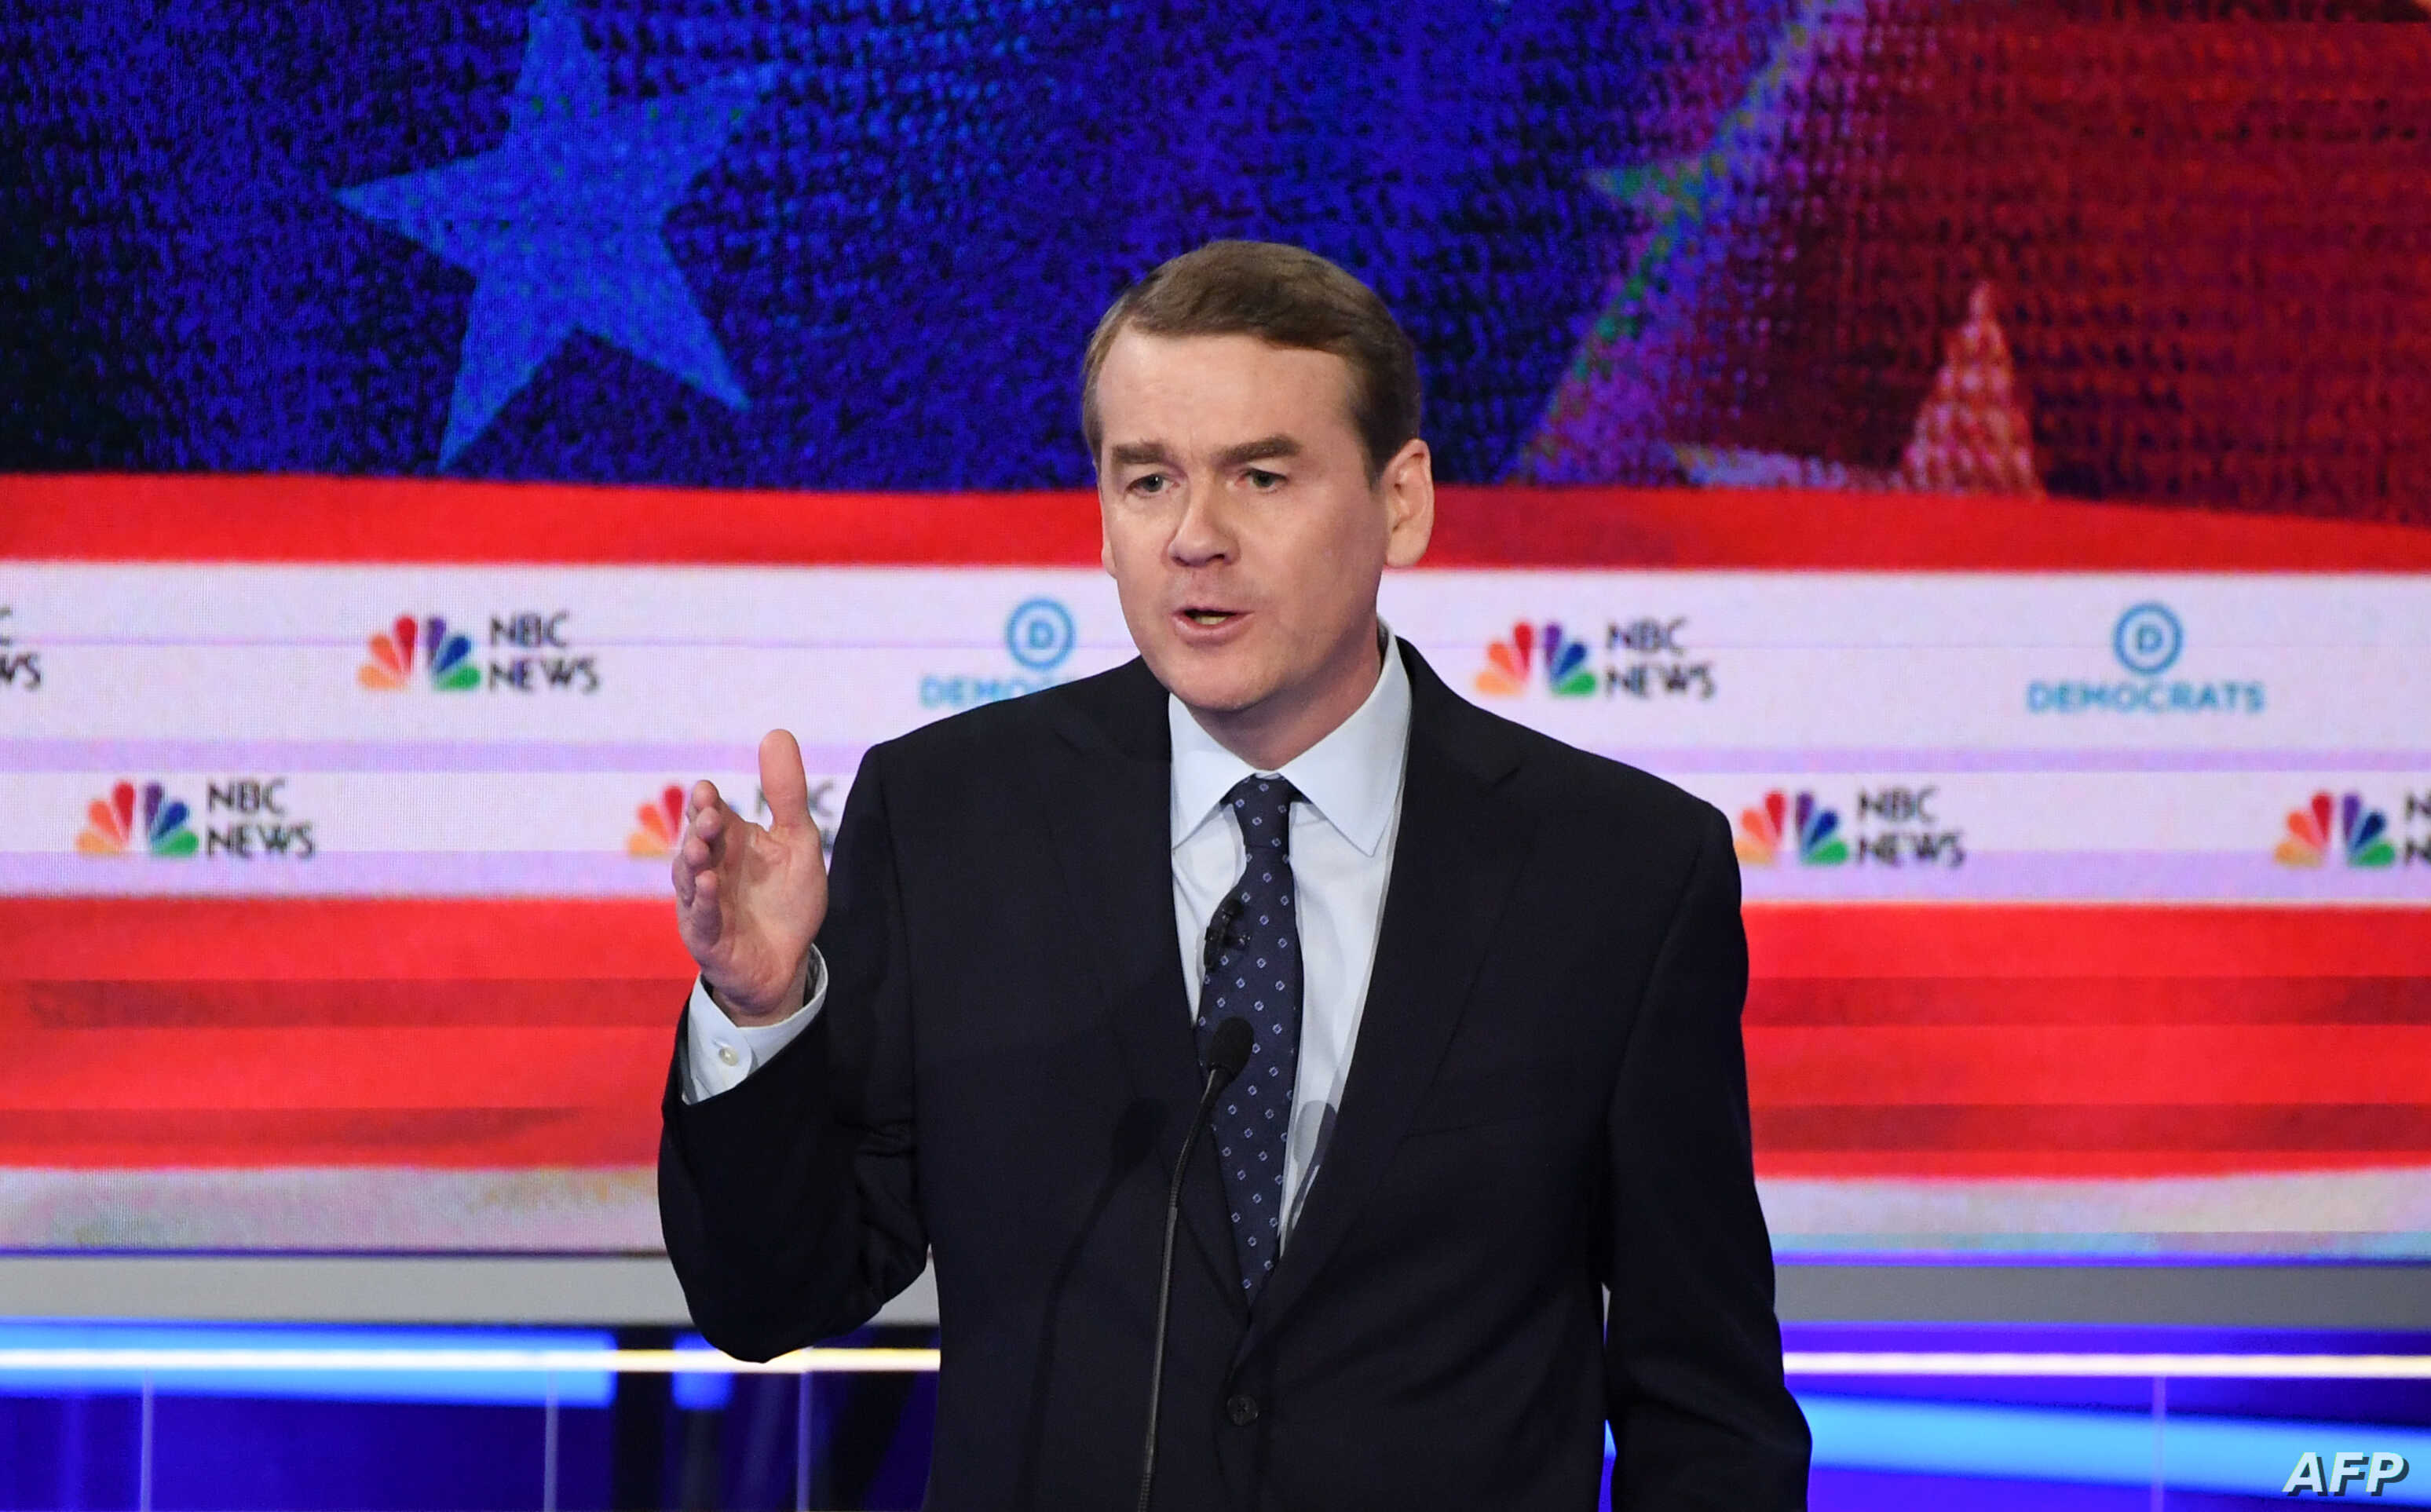 Key Quotes From Second Democratic Presidential Debate